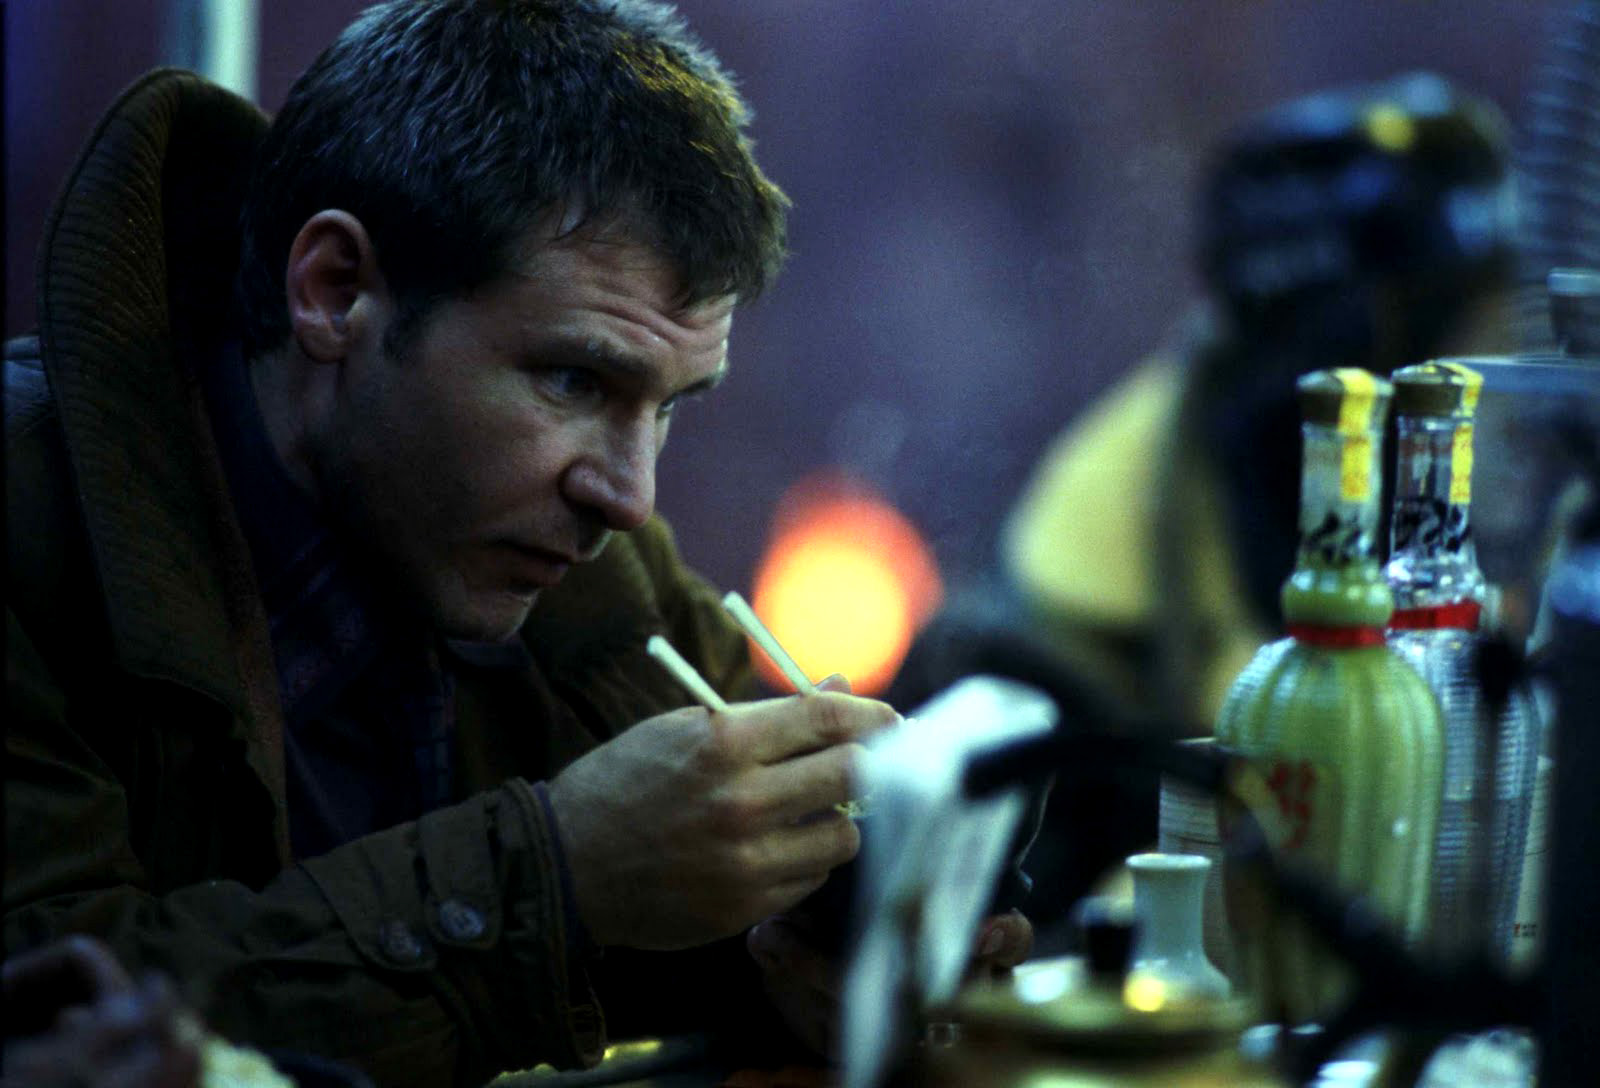 Deckard is a blade runner